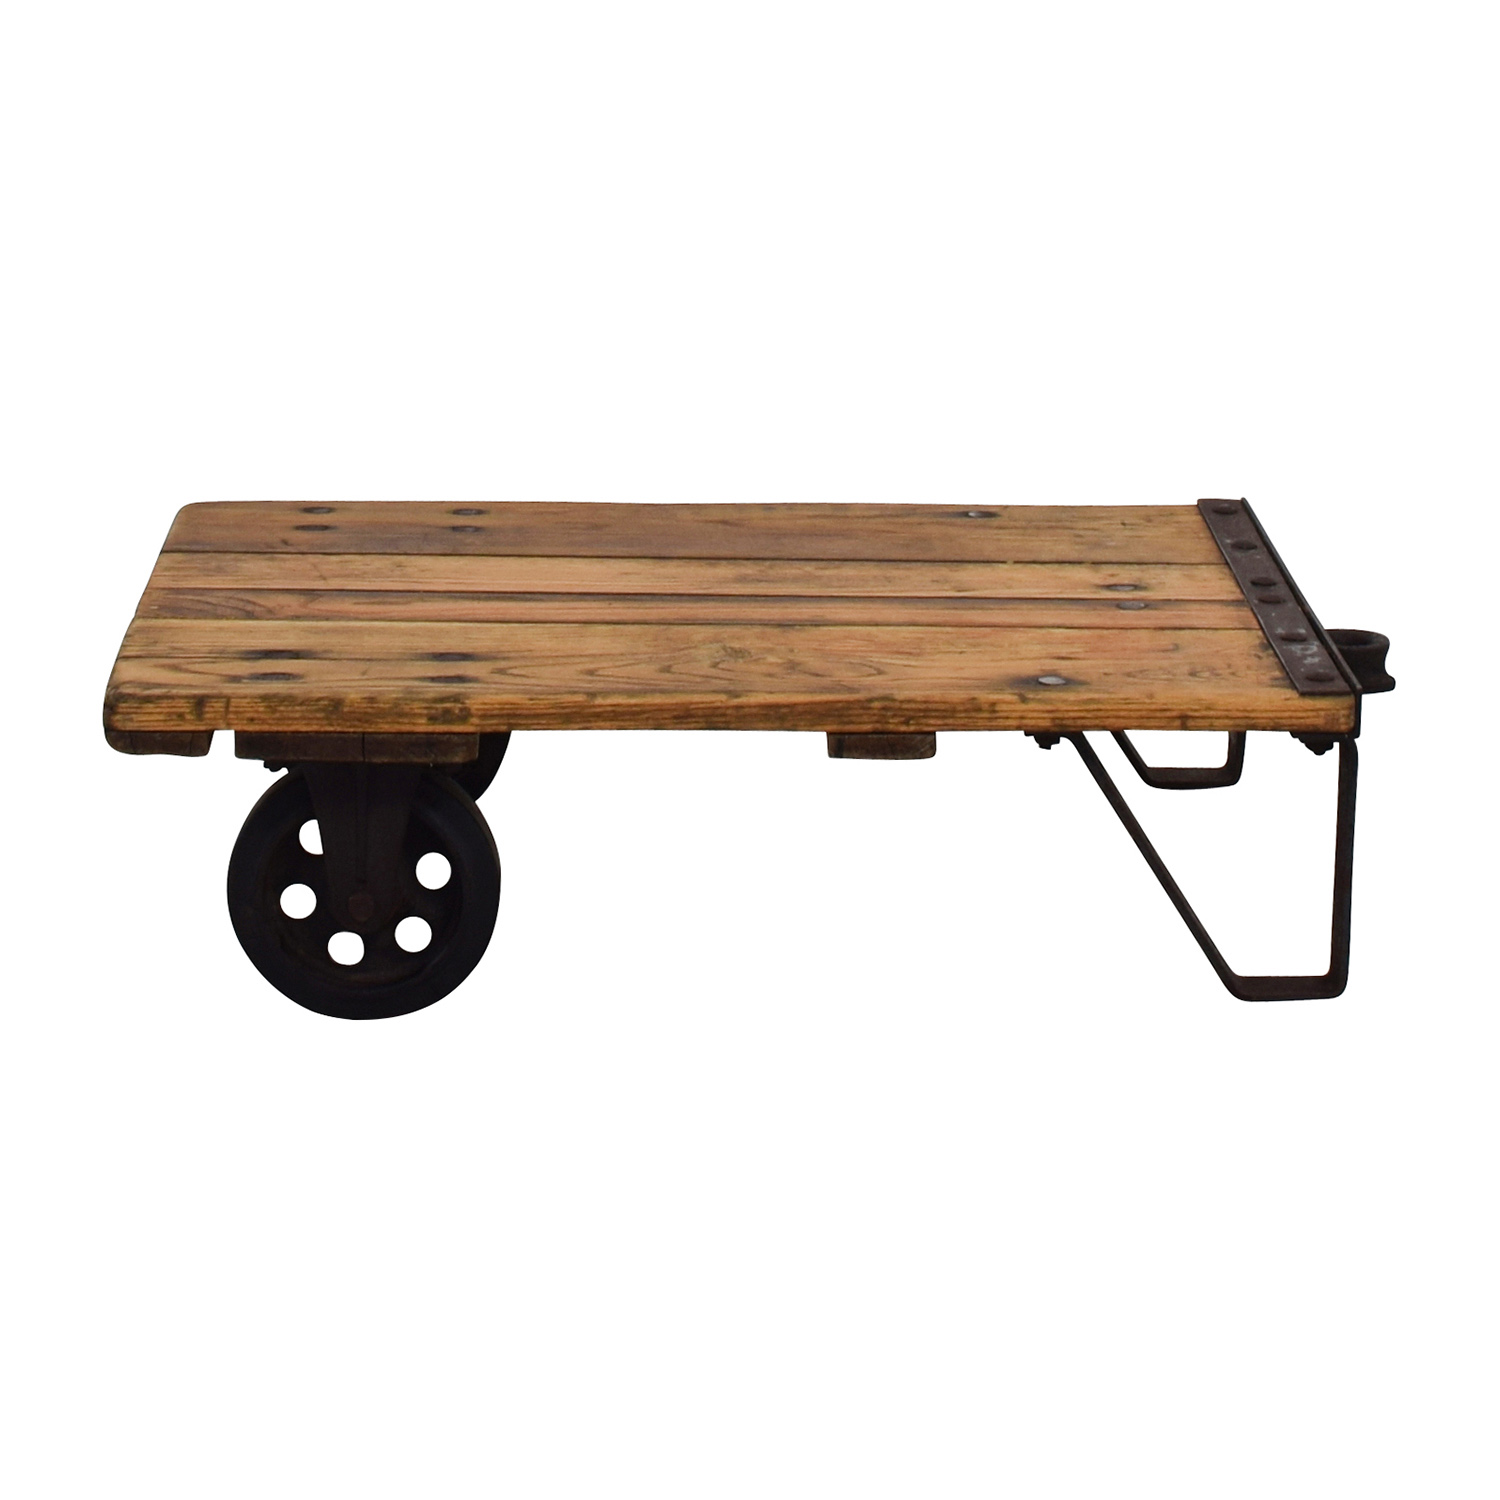 shop Thomas Truck & Caster Co Restored Industrial Coffee Table Thomas Truck & Caster Co